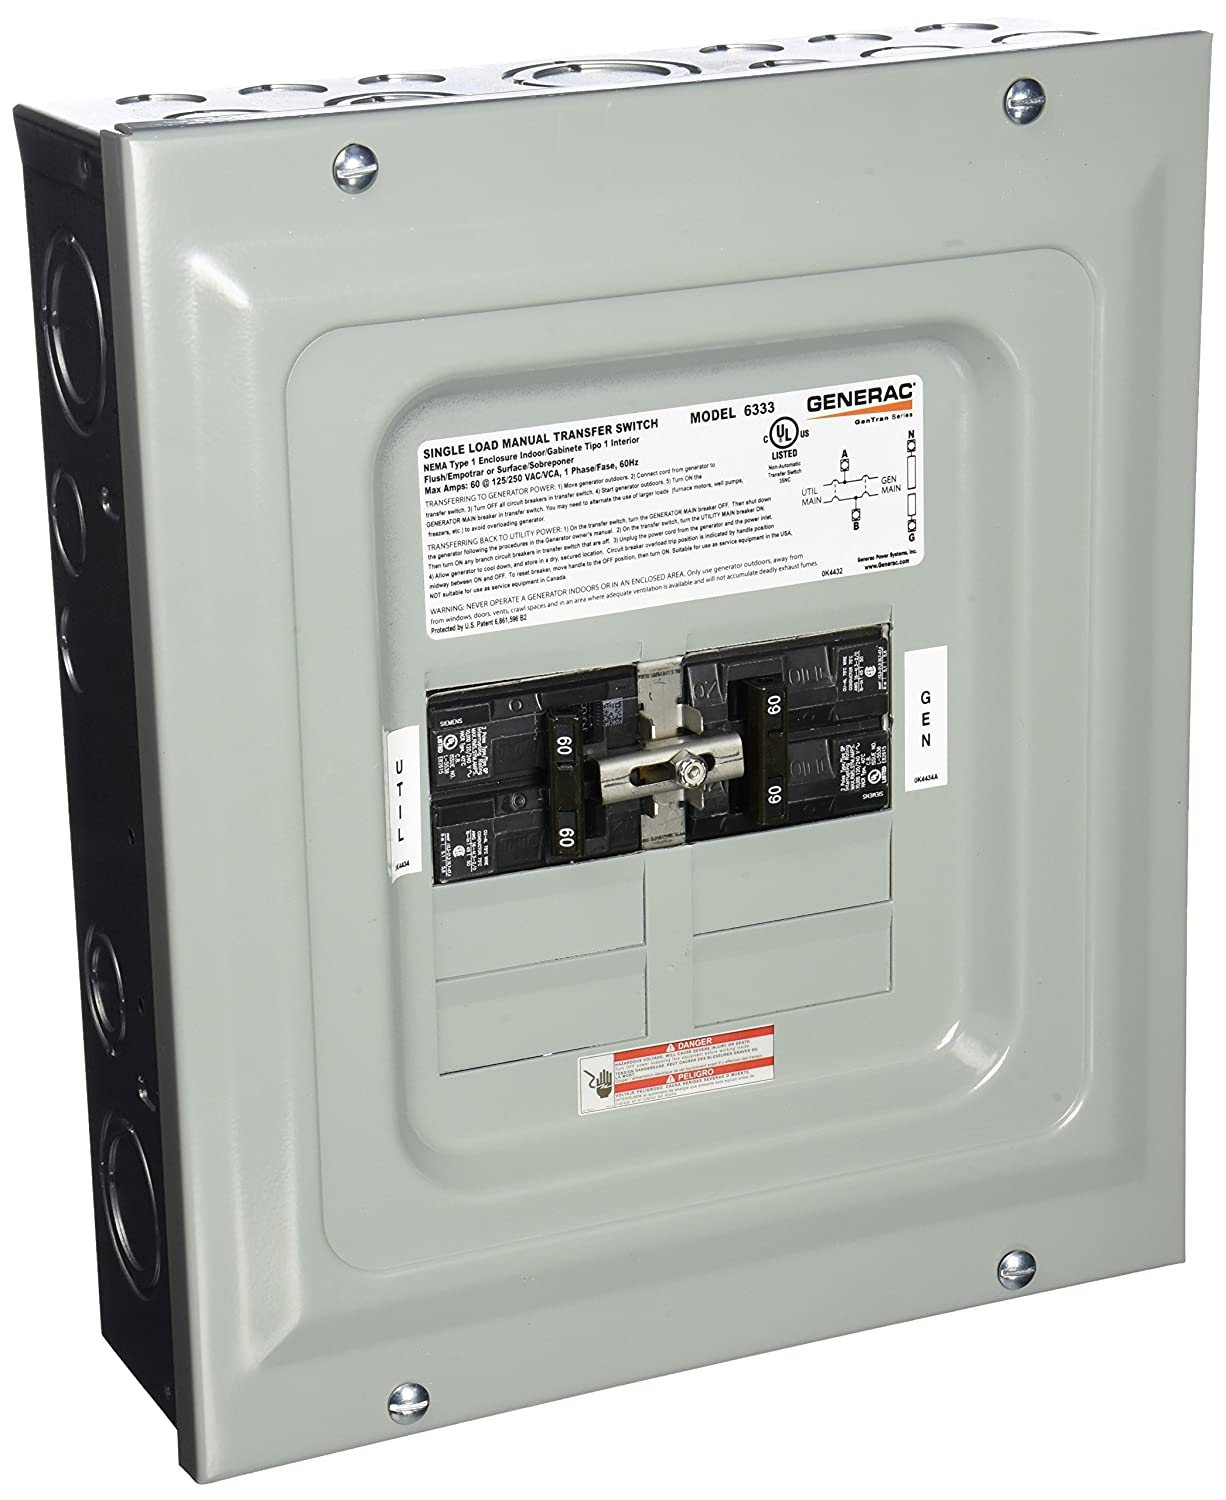 81jp4WmKetL._SL1500_ outdoor generator transfer switches amazon com generac rtsw100a3 wiring diagram at virtualis.co